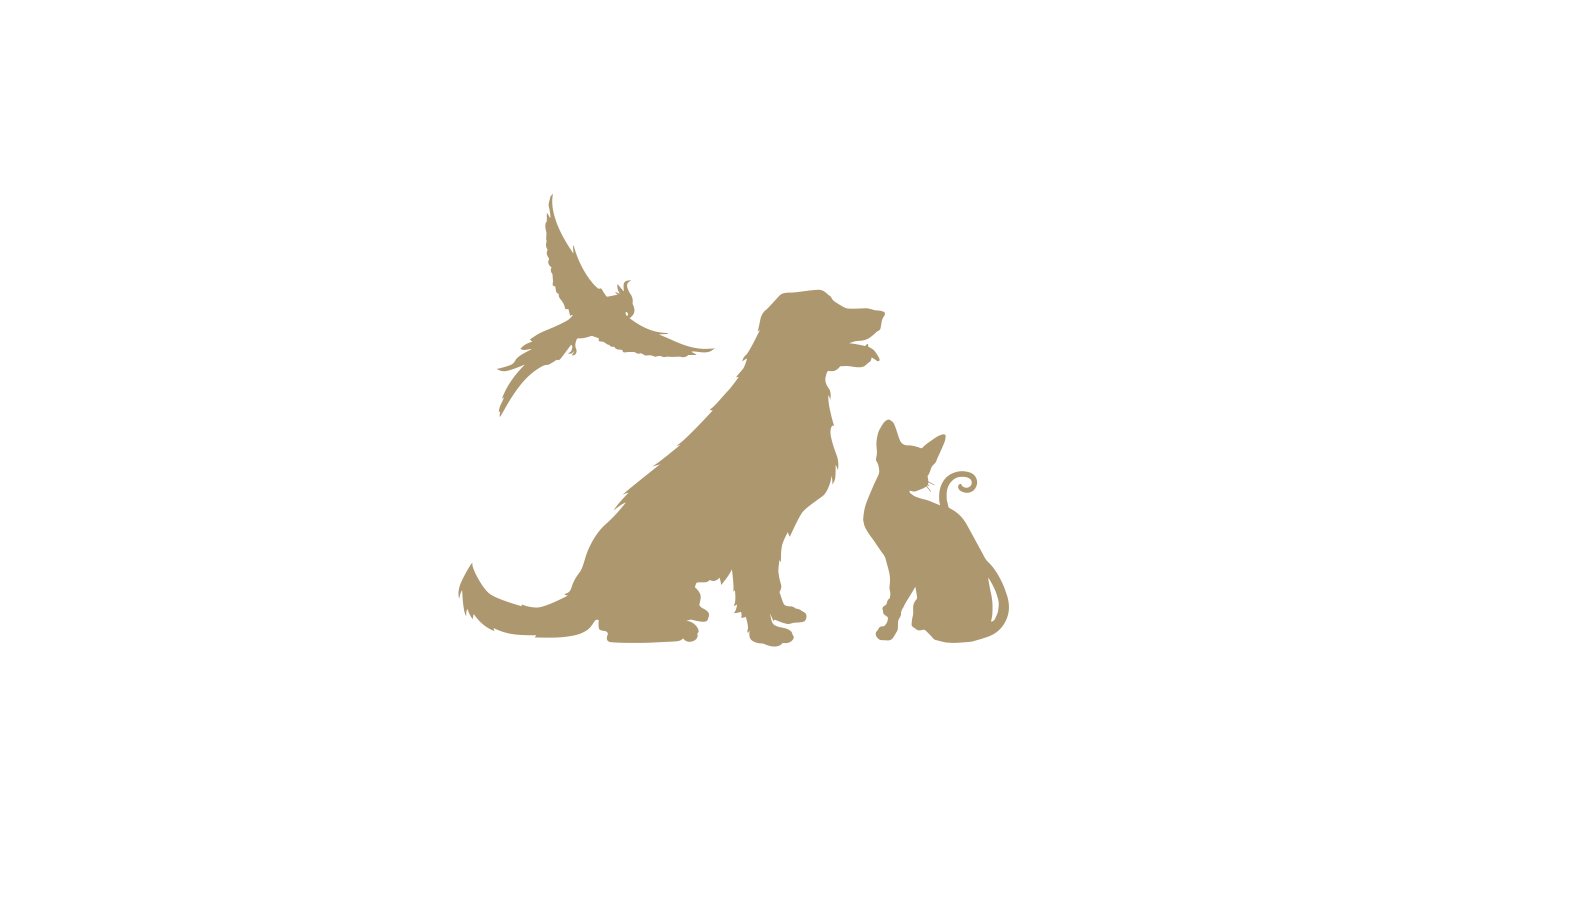 pampered pets no background.png